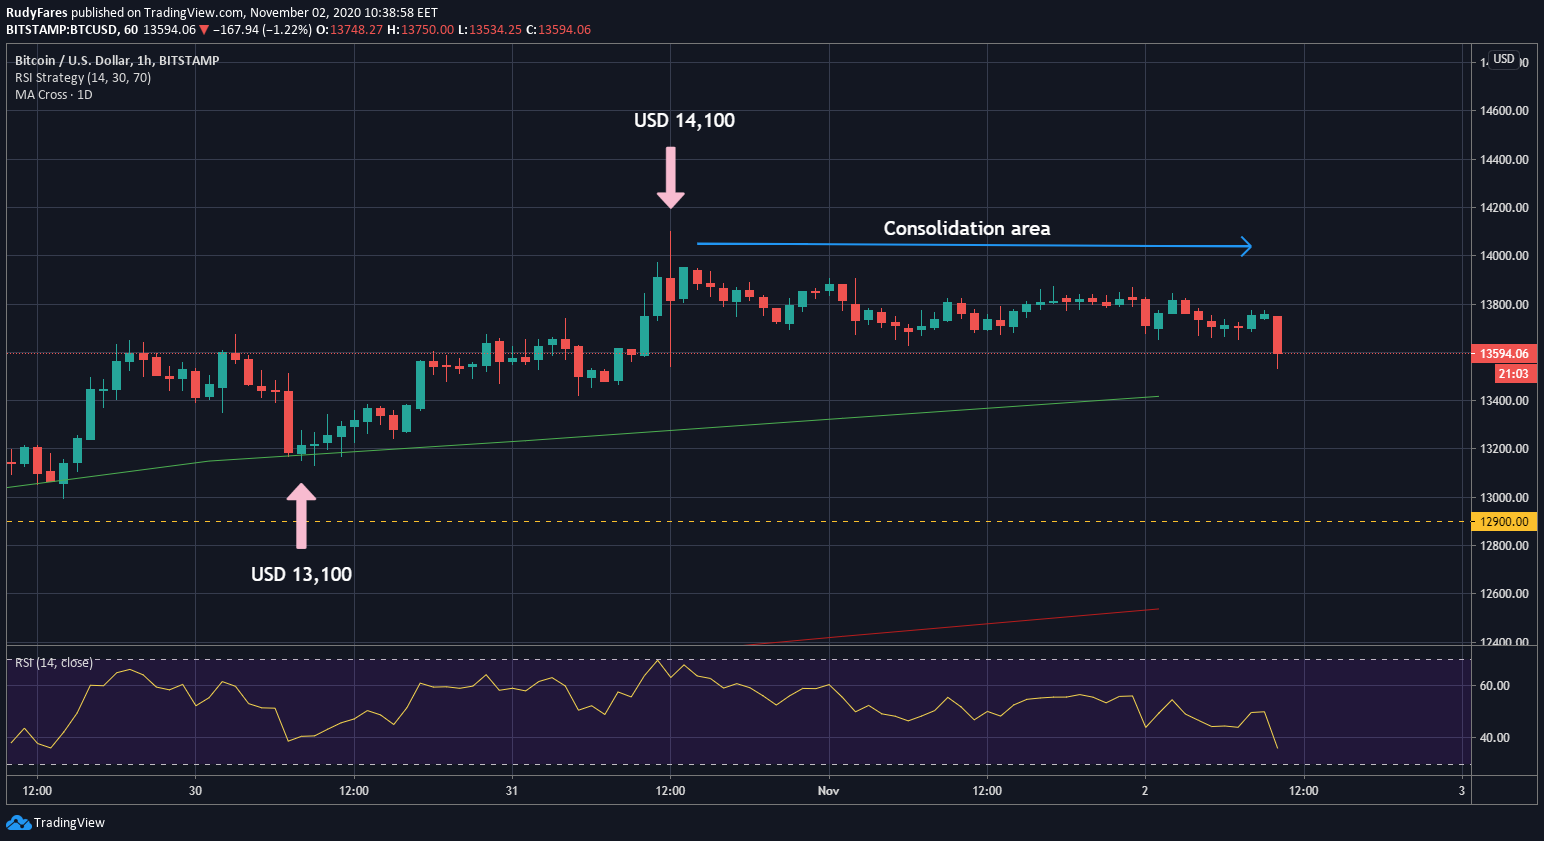 BTC/USD price 1H chart during the weekend